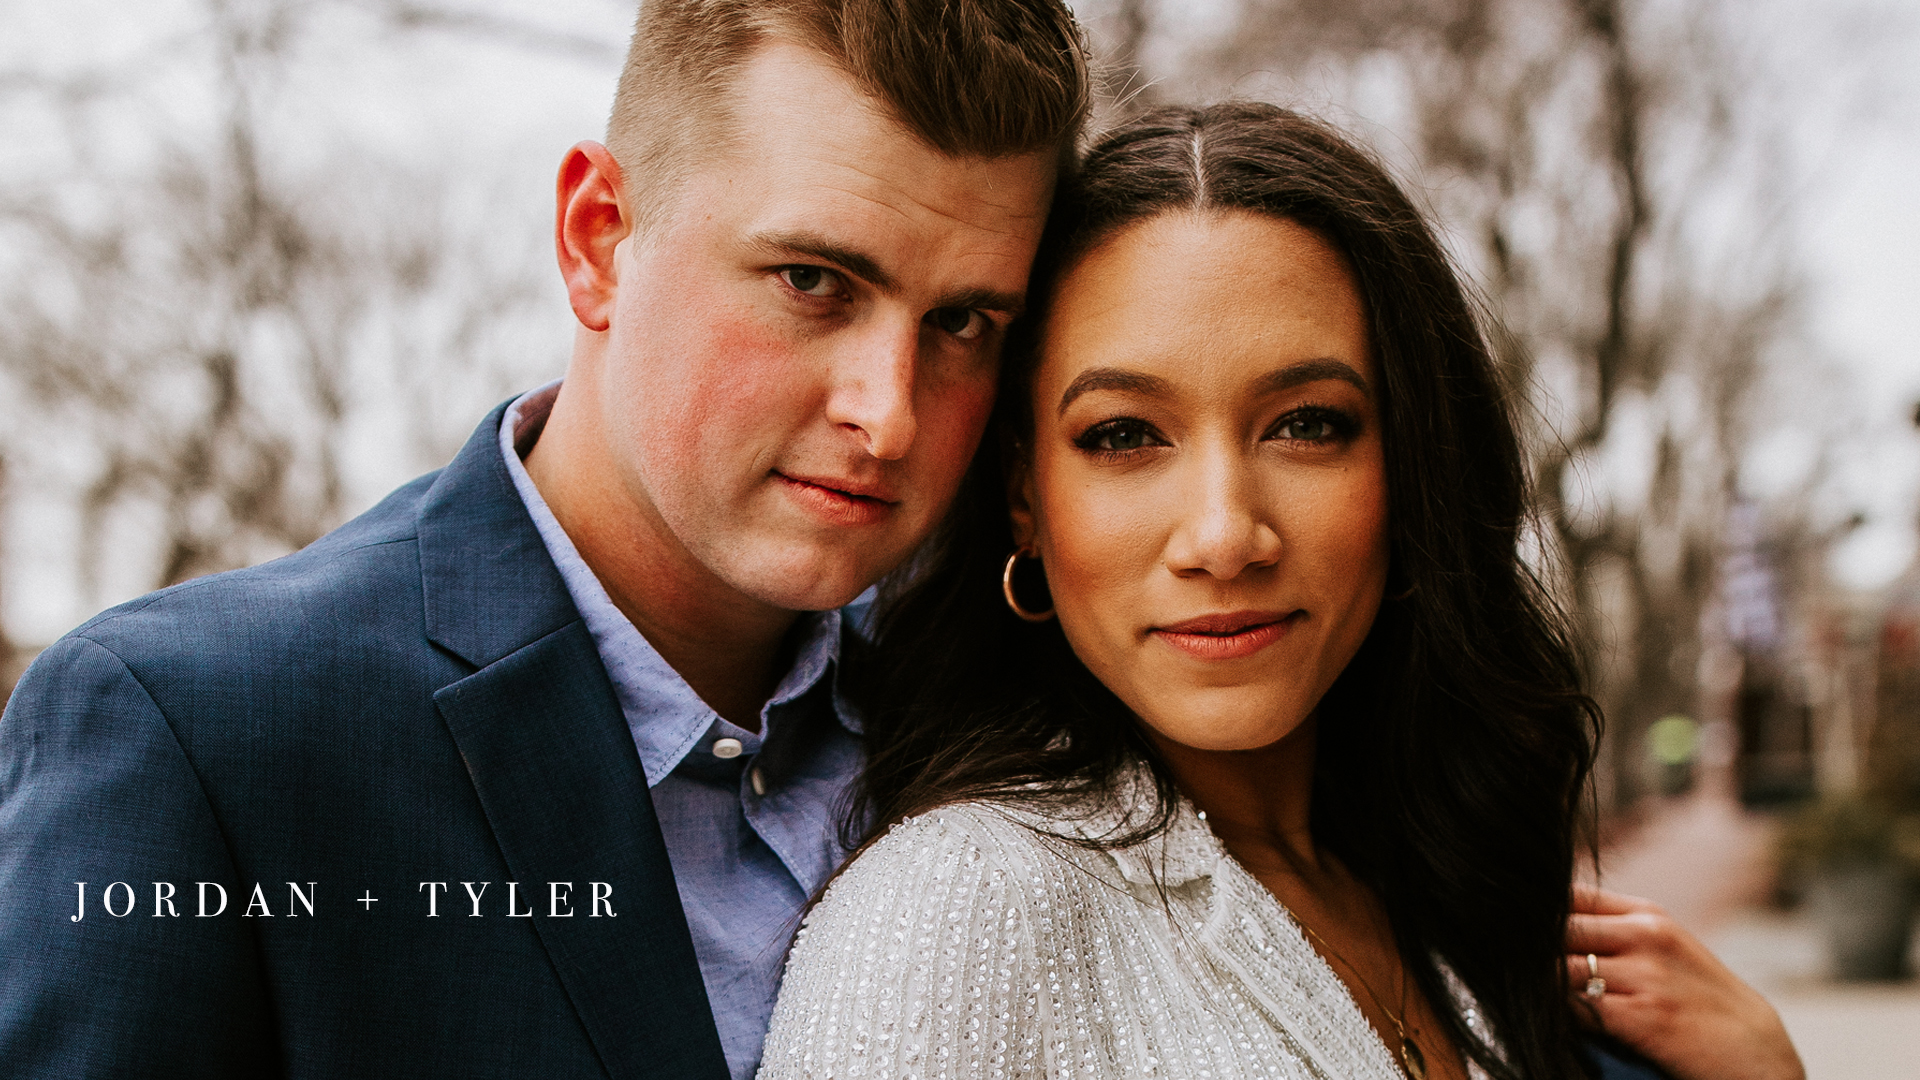 Jordan + Tyler | Minneapolis, Minnesota | street